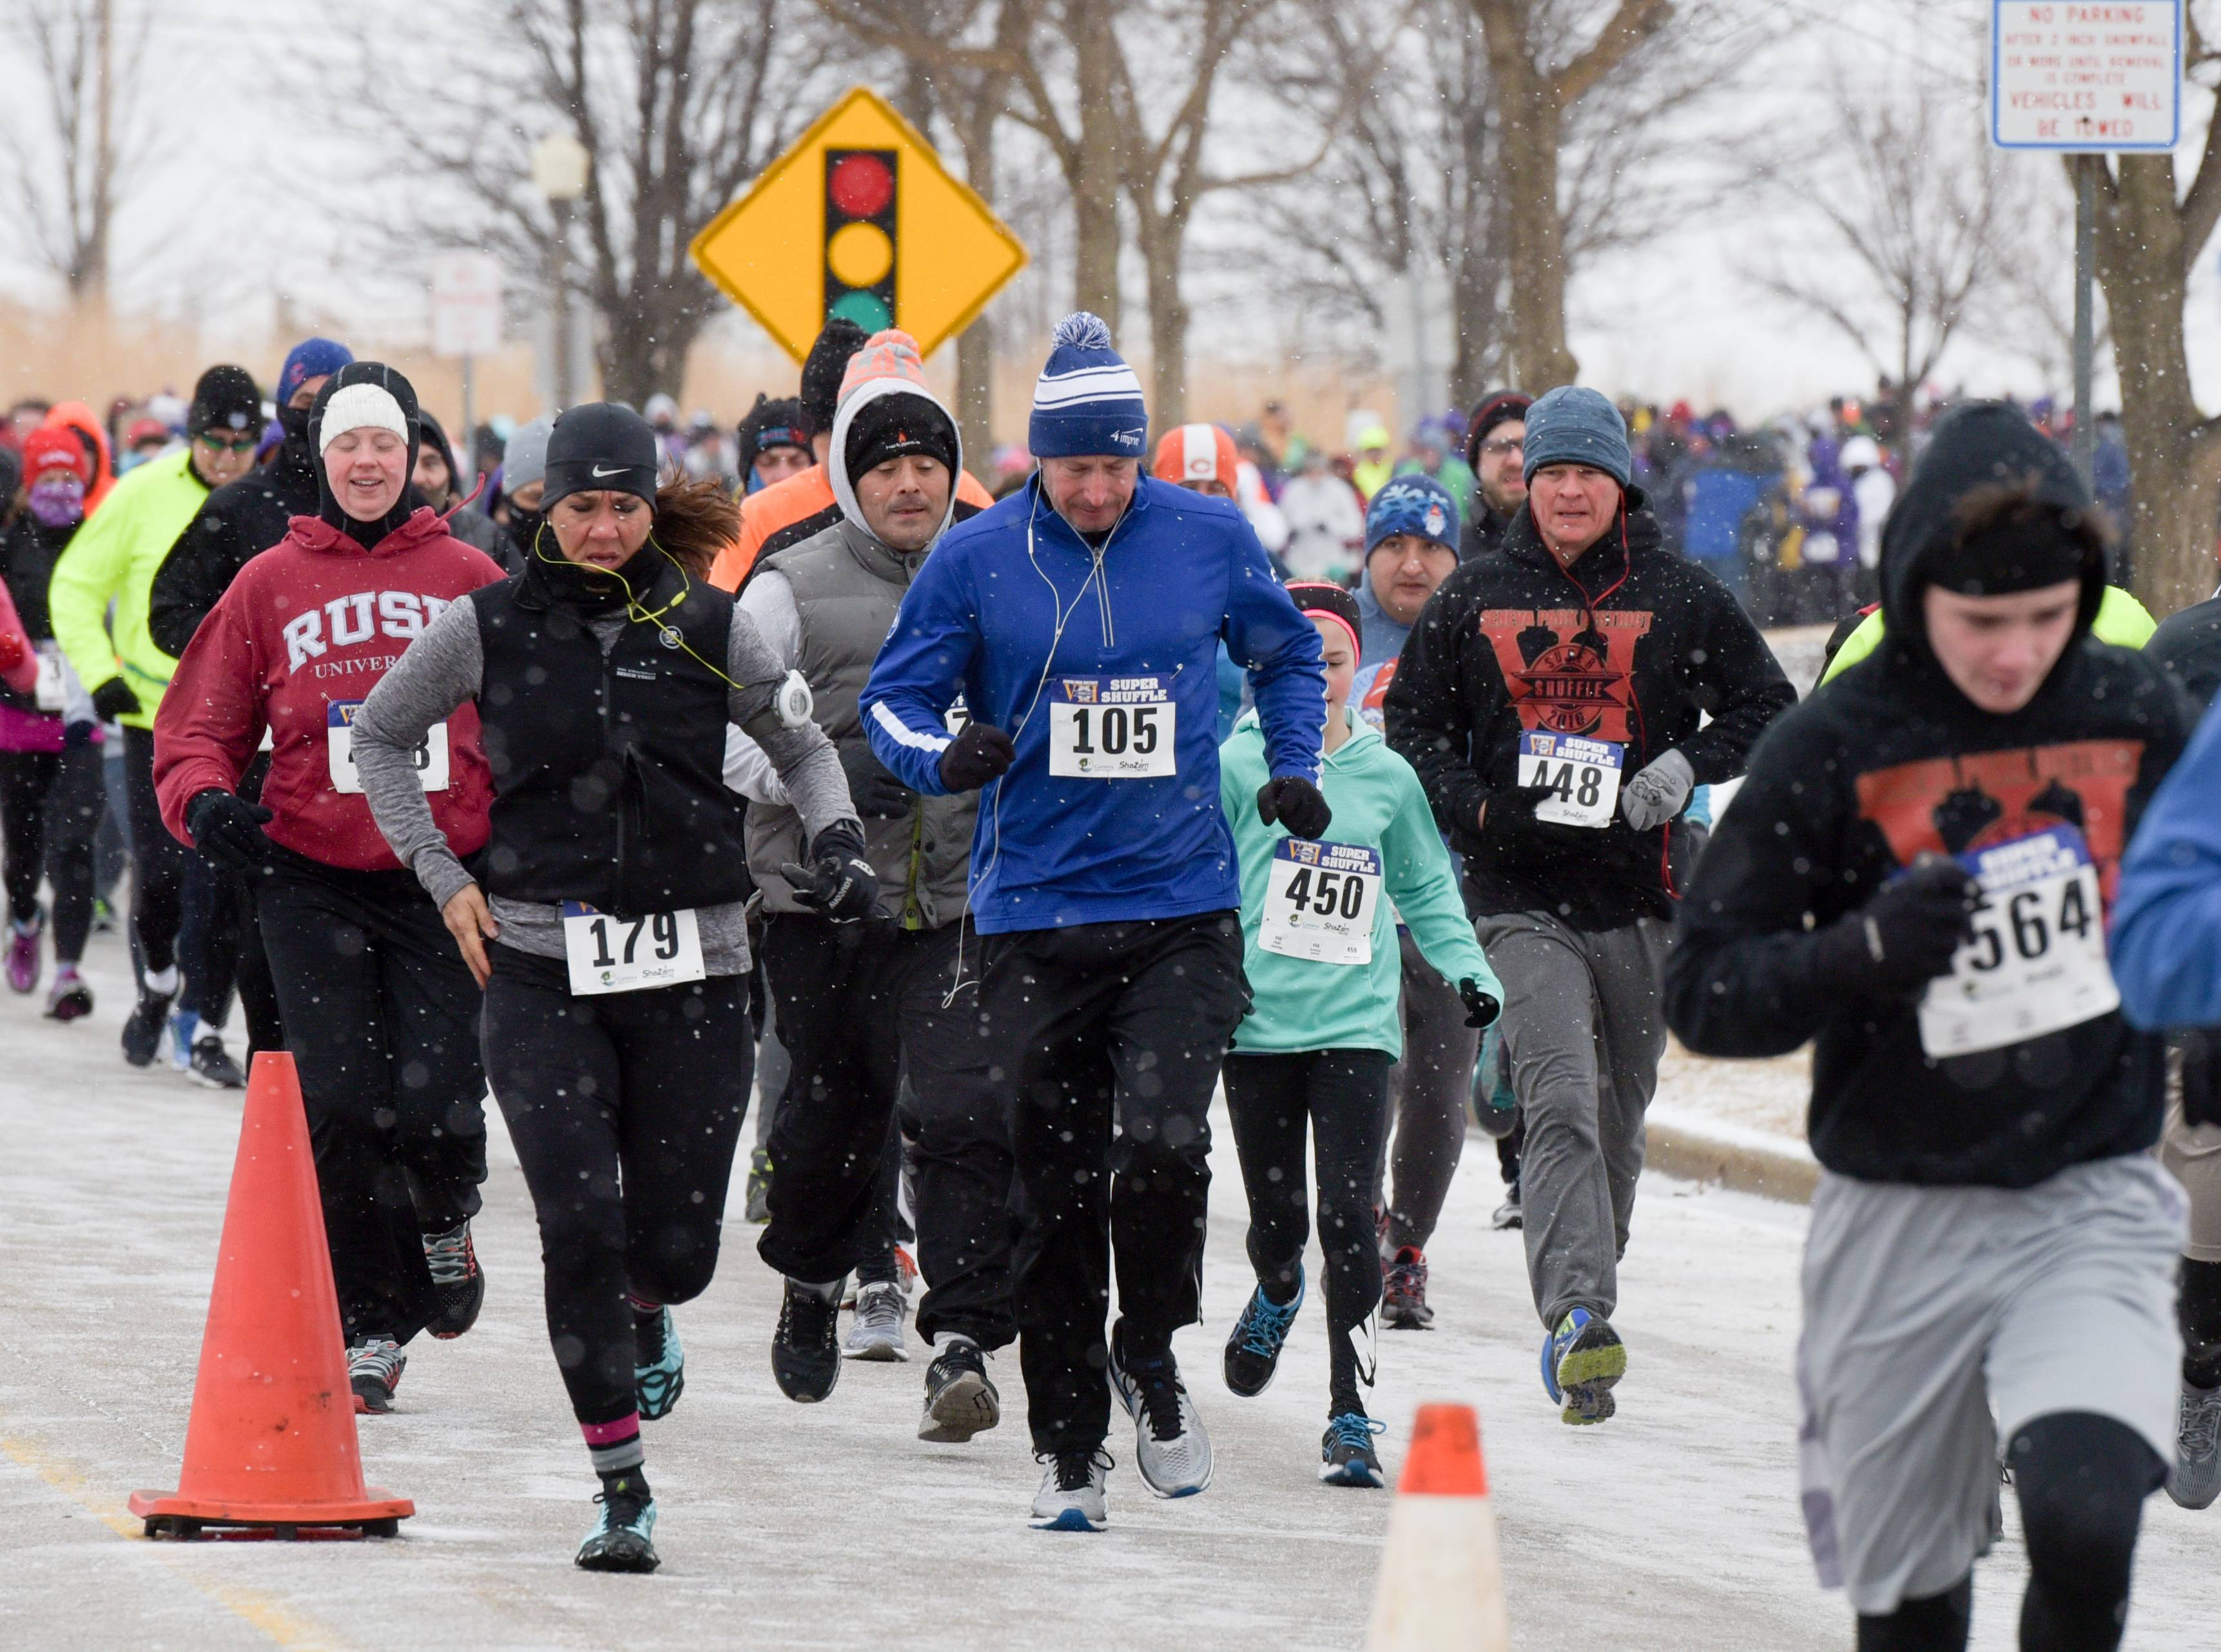 Despite the cold and snow dozens of participants showed up and ran in the annual Super Shuffle 5K in Geneva on Sunday.